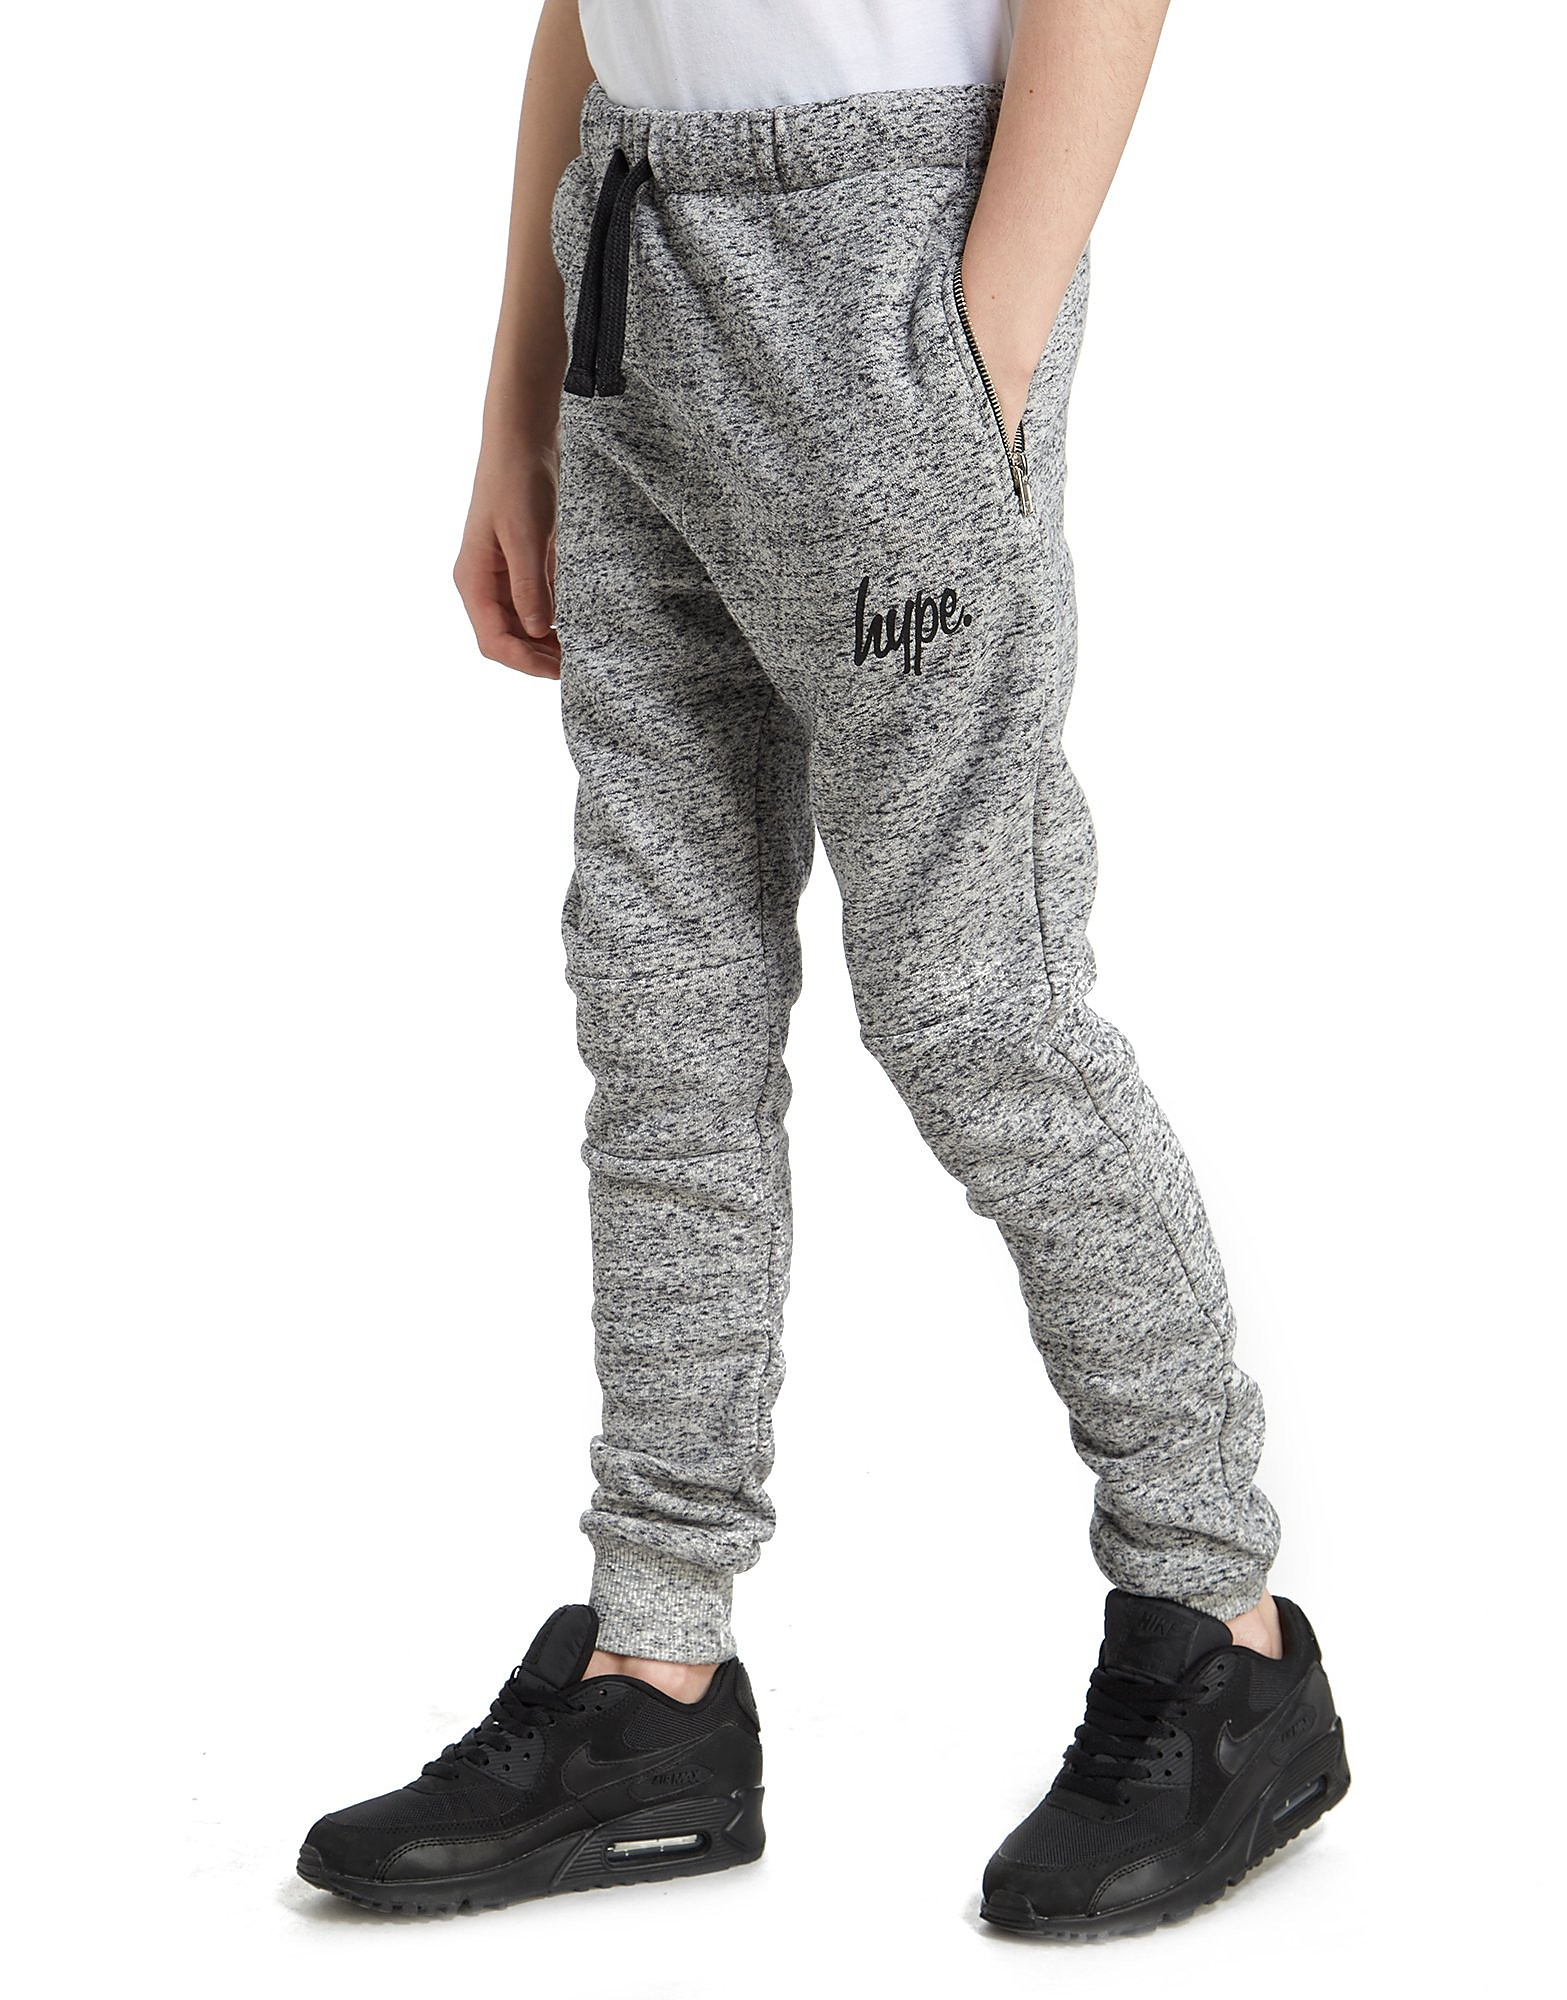 Hype Zip Pocket Pants Junior